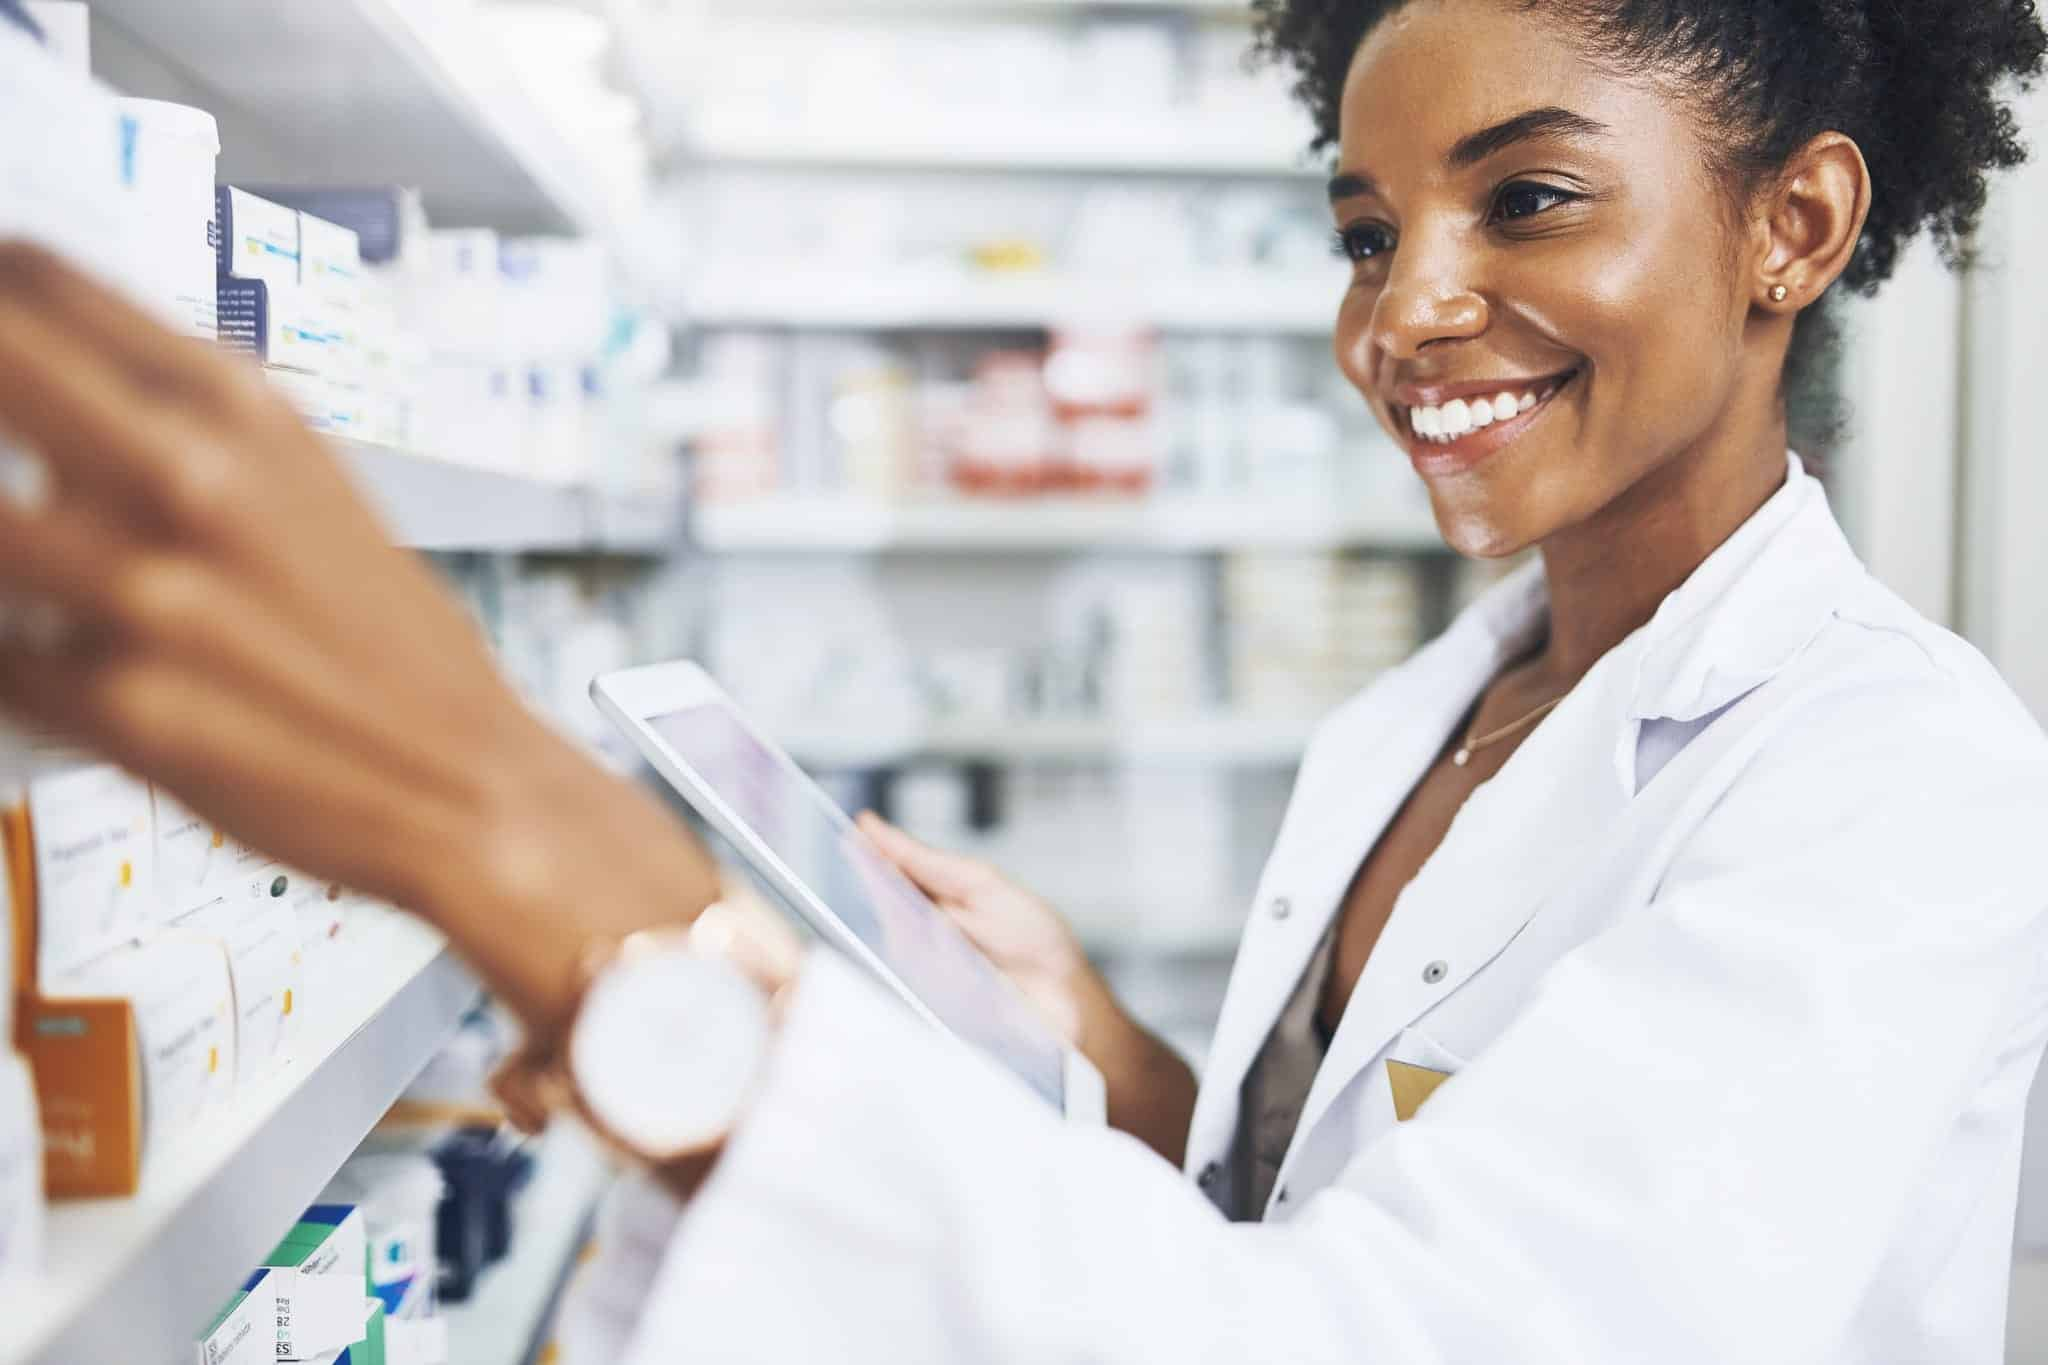 A hospital pharmacist uses a tablet to inventory medicine.